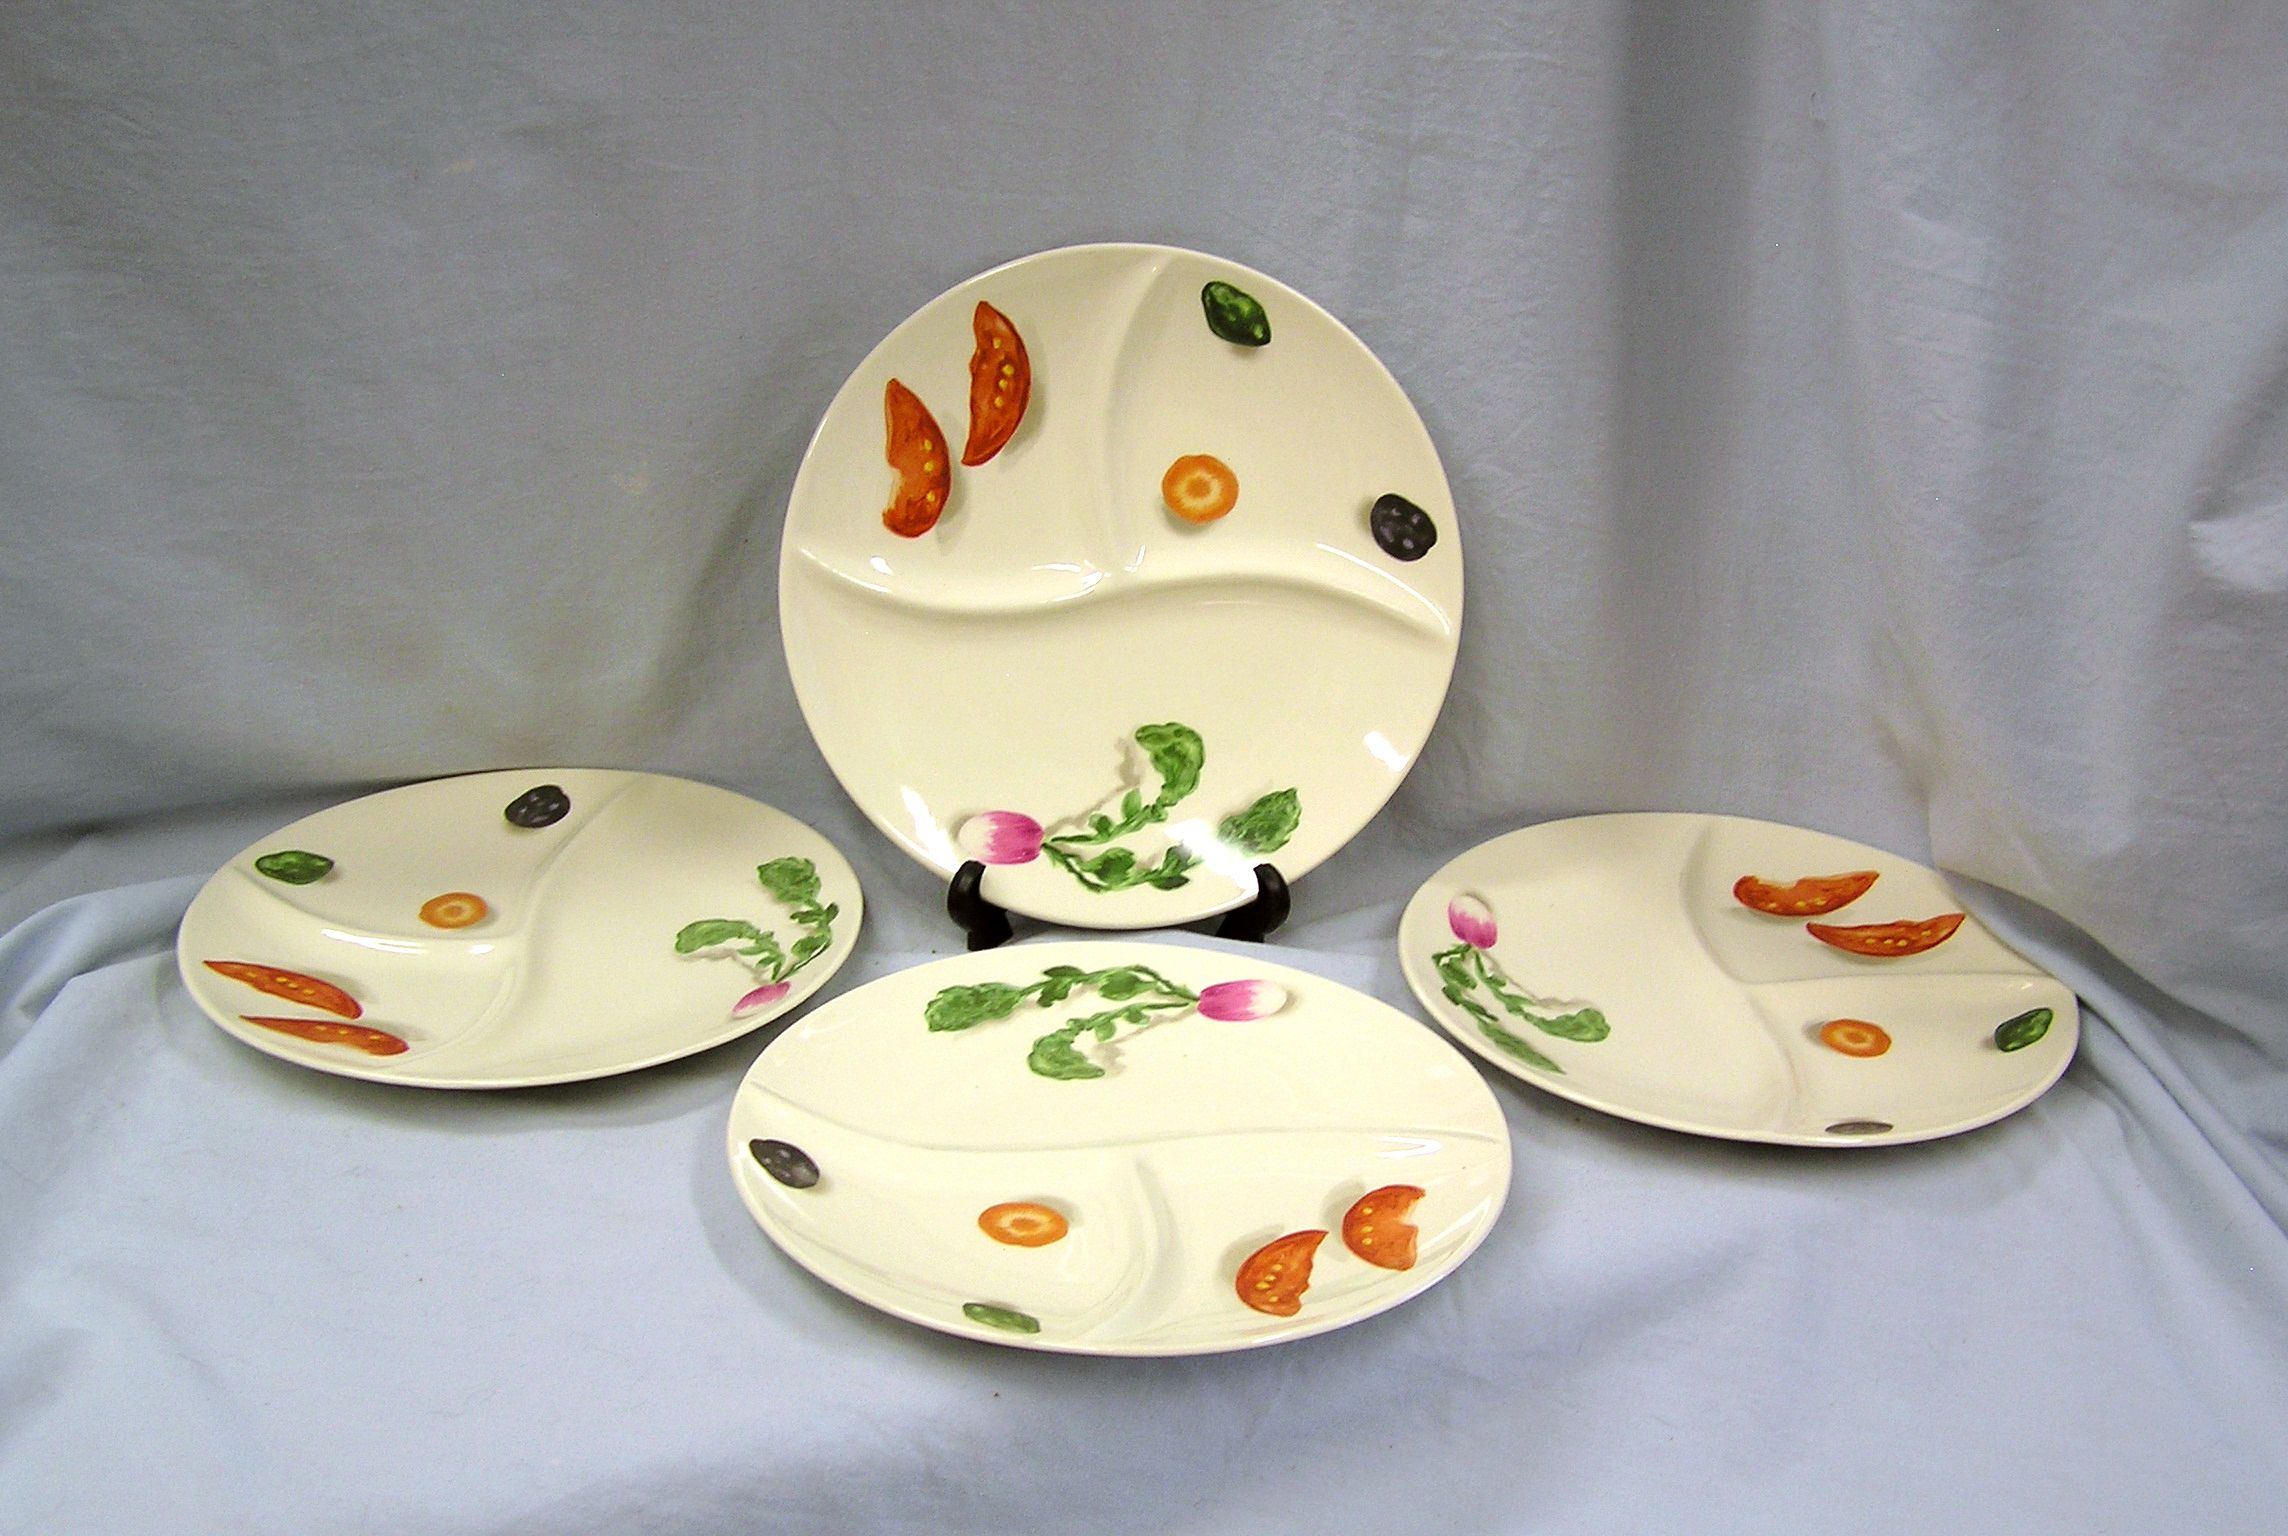 Set of 4 RARE Divided Ceramic Dinner Plates Dishes China Retro on eBay! & Set of 4 RARE Divided Ceramic Dinner Plates Dishes China Retro on ...